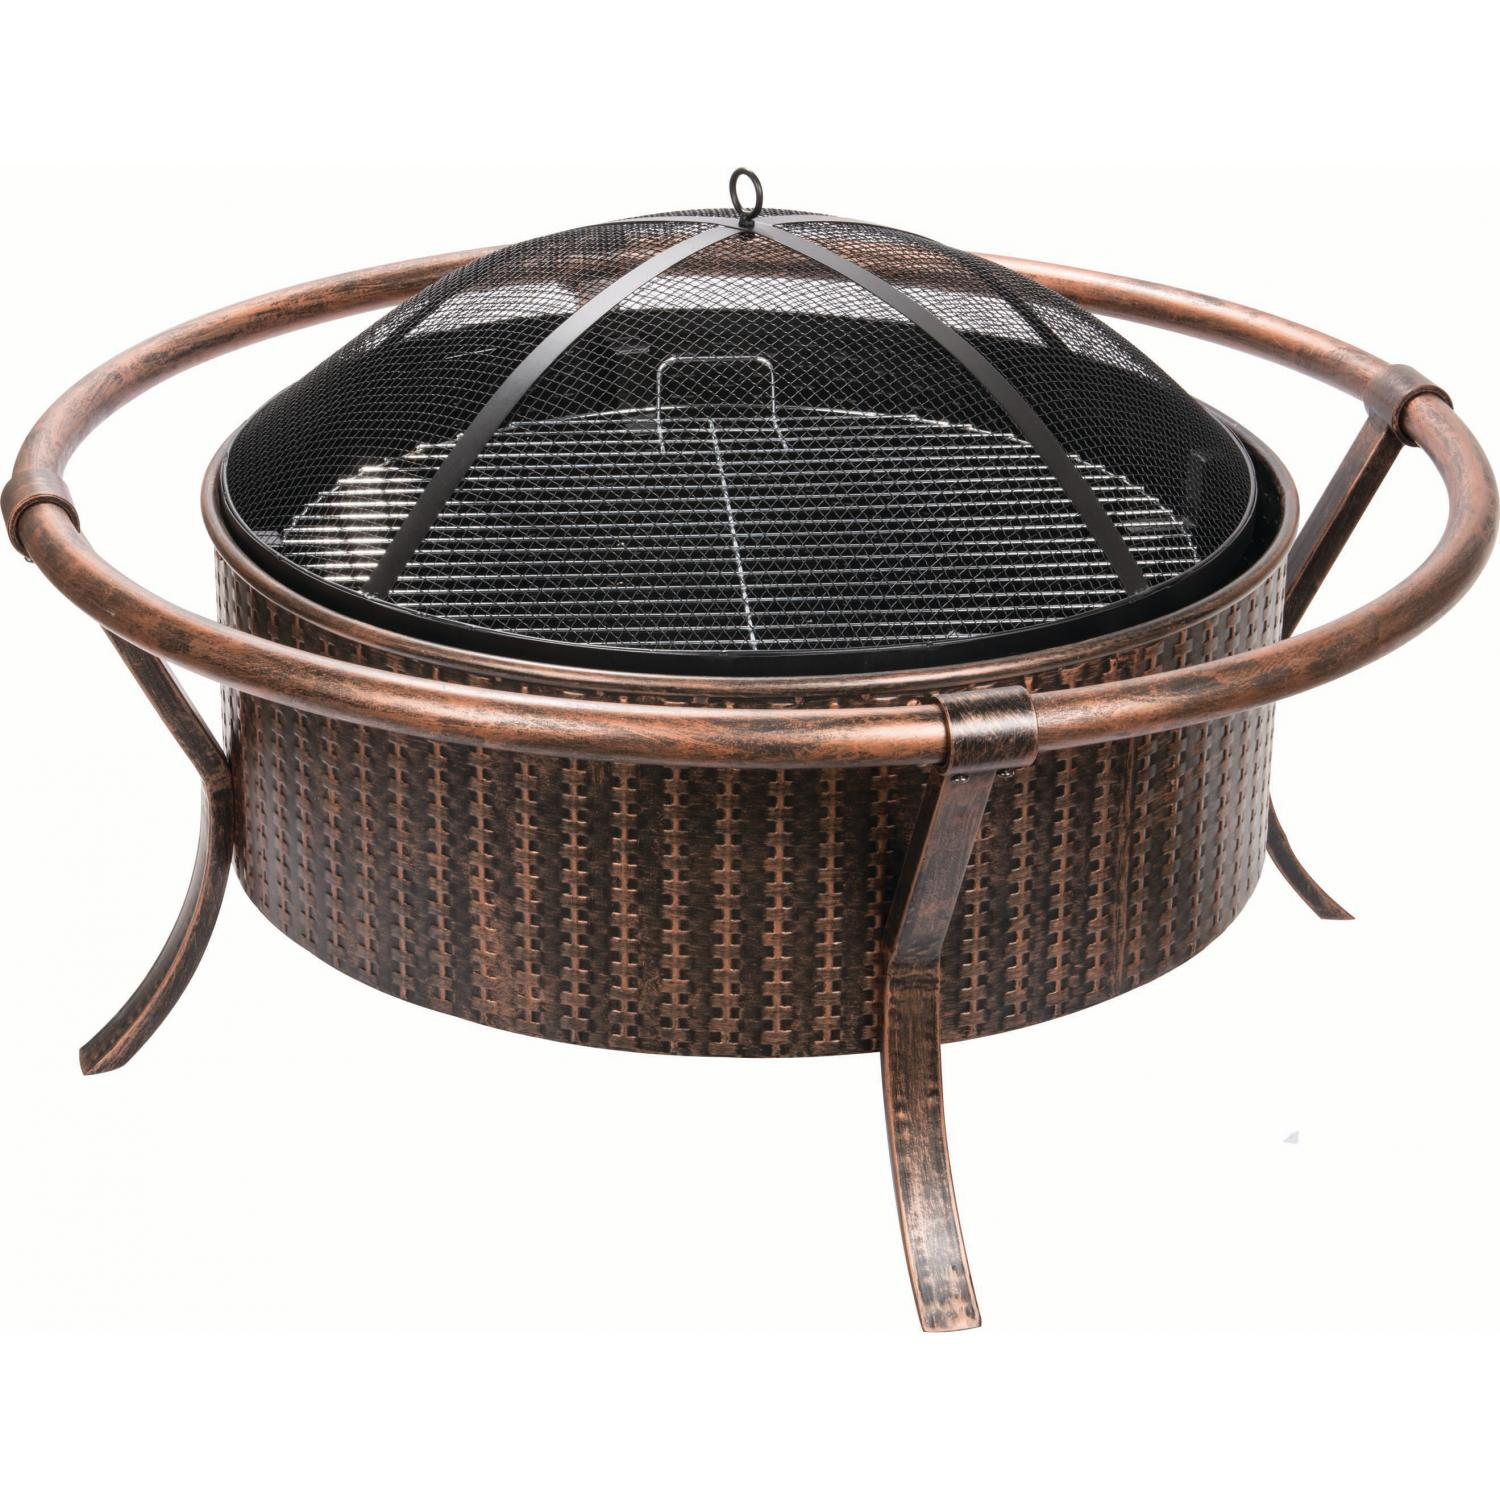 Alpine Flame 37-inch Copper And Black Outdoor Wood Burning Fire Pit With Weave Design at Sears.com